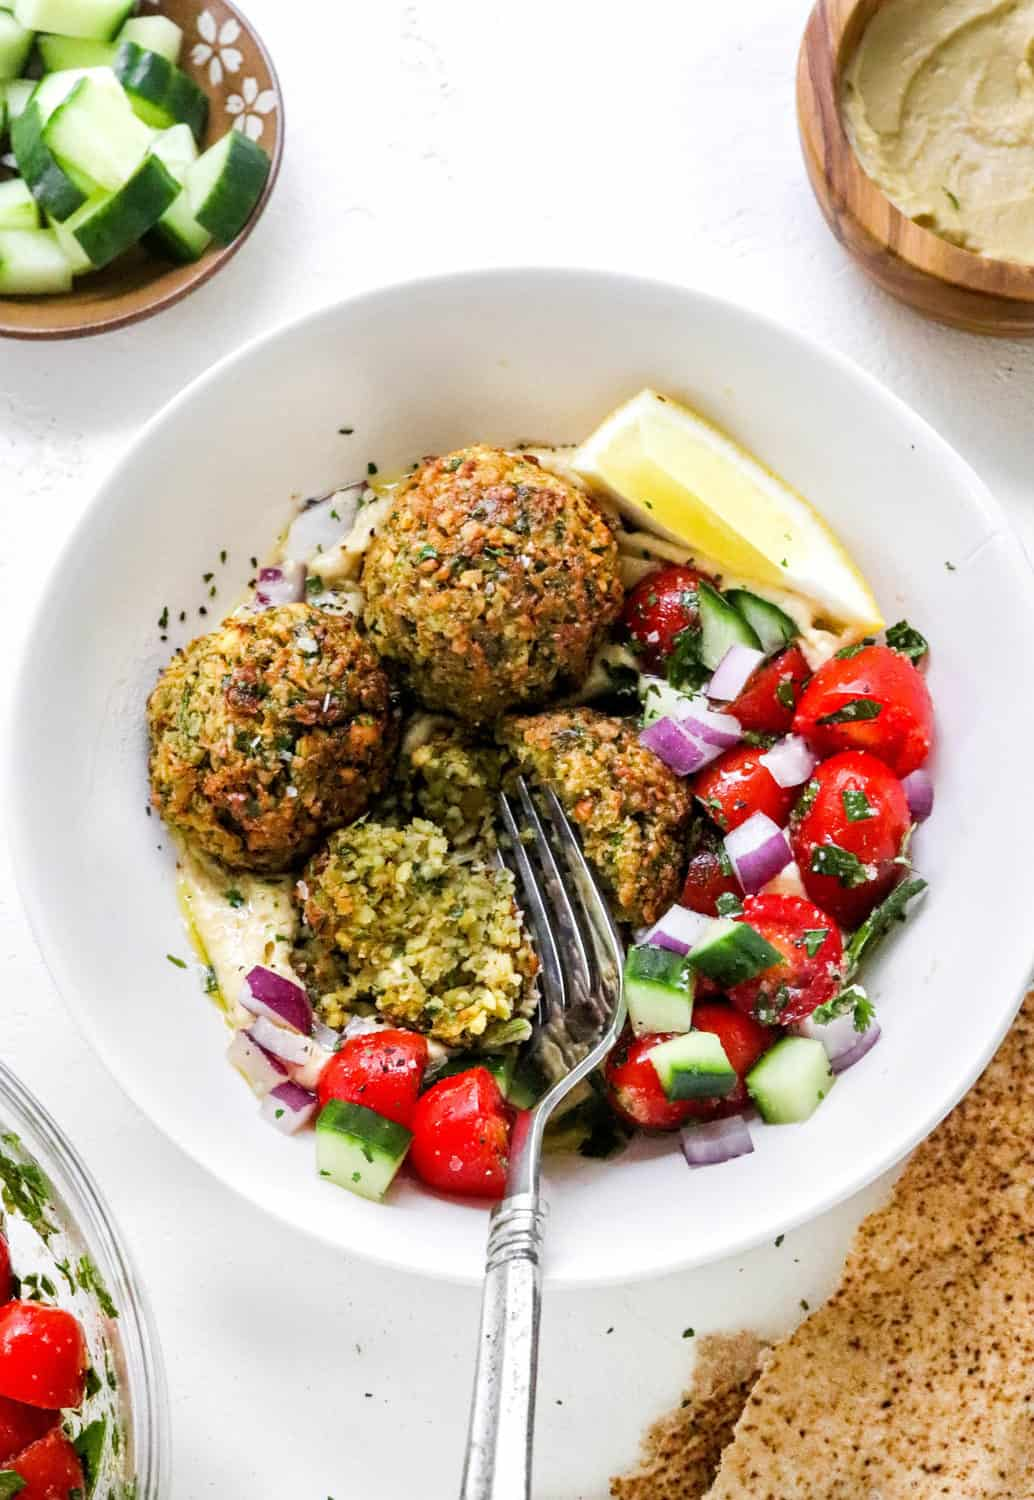 Round white bowl with crispy falafel in it on top of hummus, chopped tomatoes, cucumber and onion with a fork cutting into one of the falafel.  With more chopped cucumber and hummus in bowls behind it.